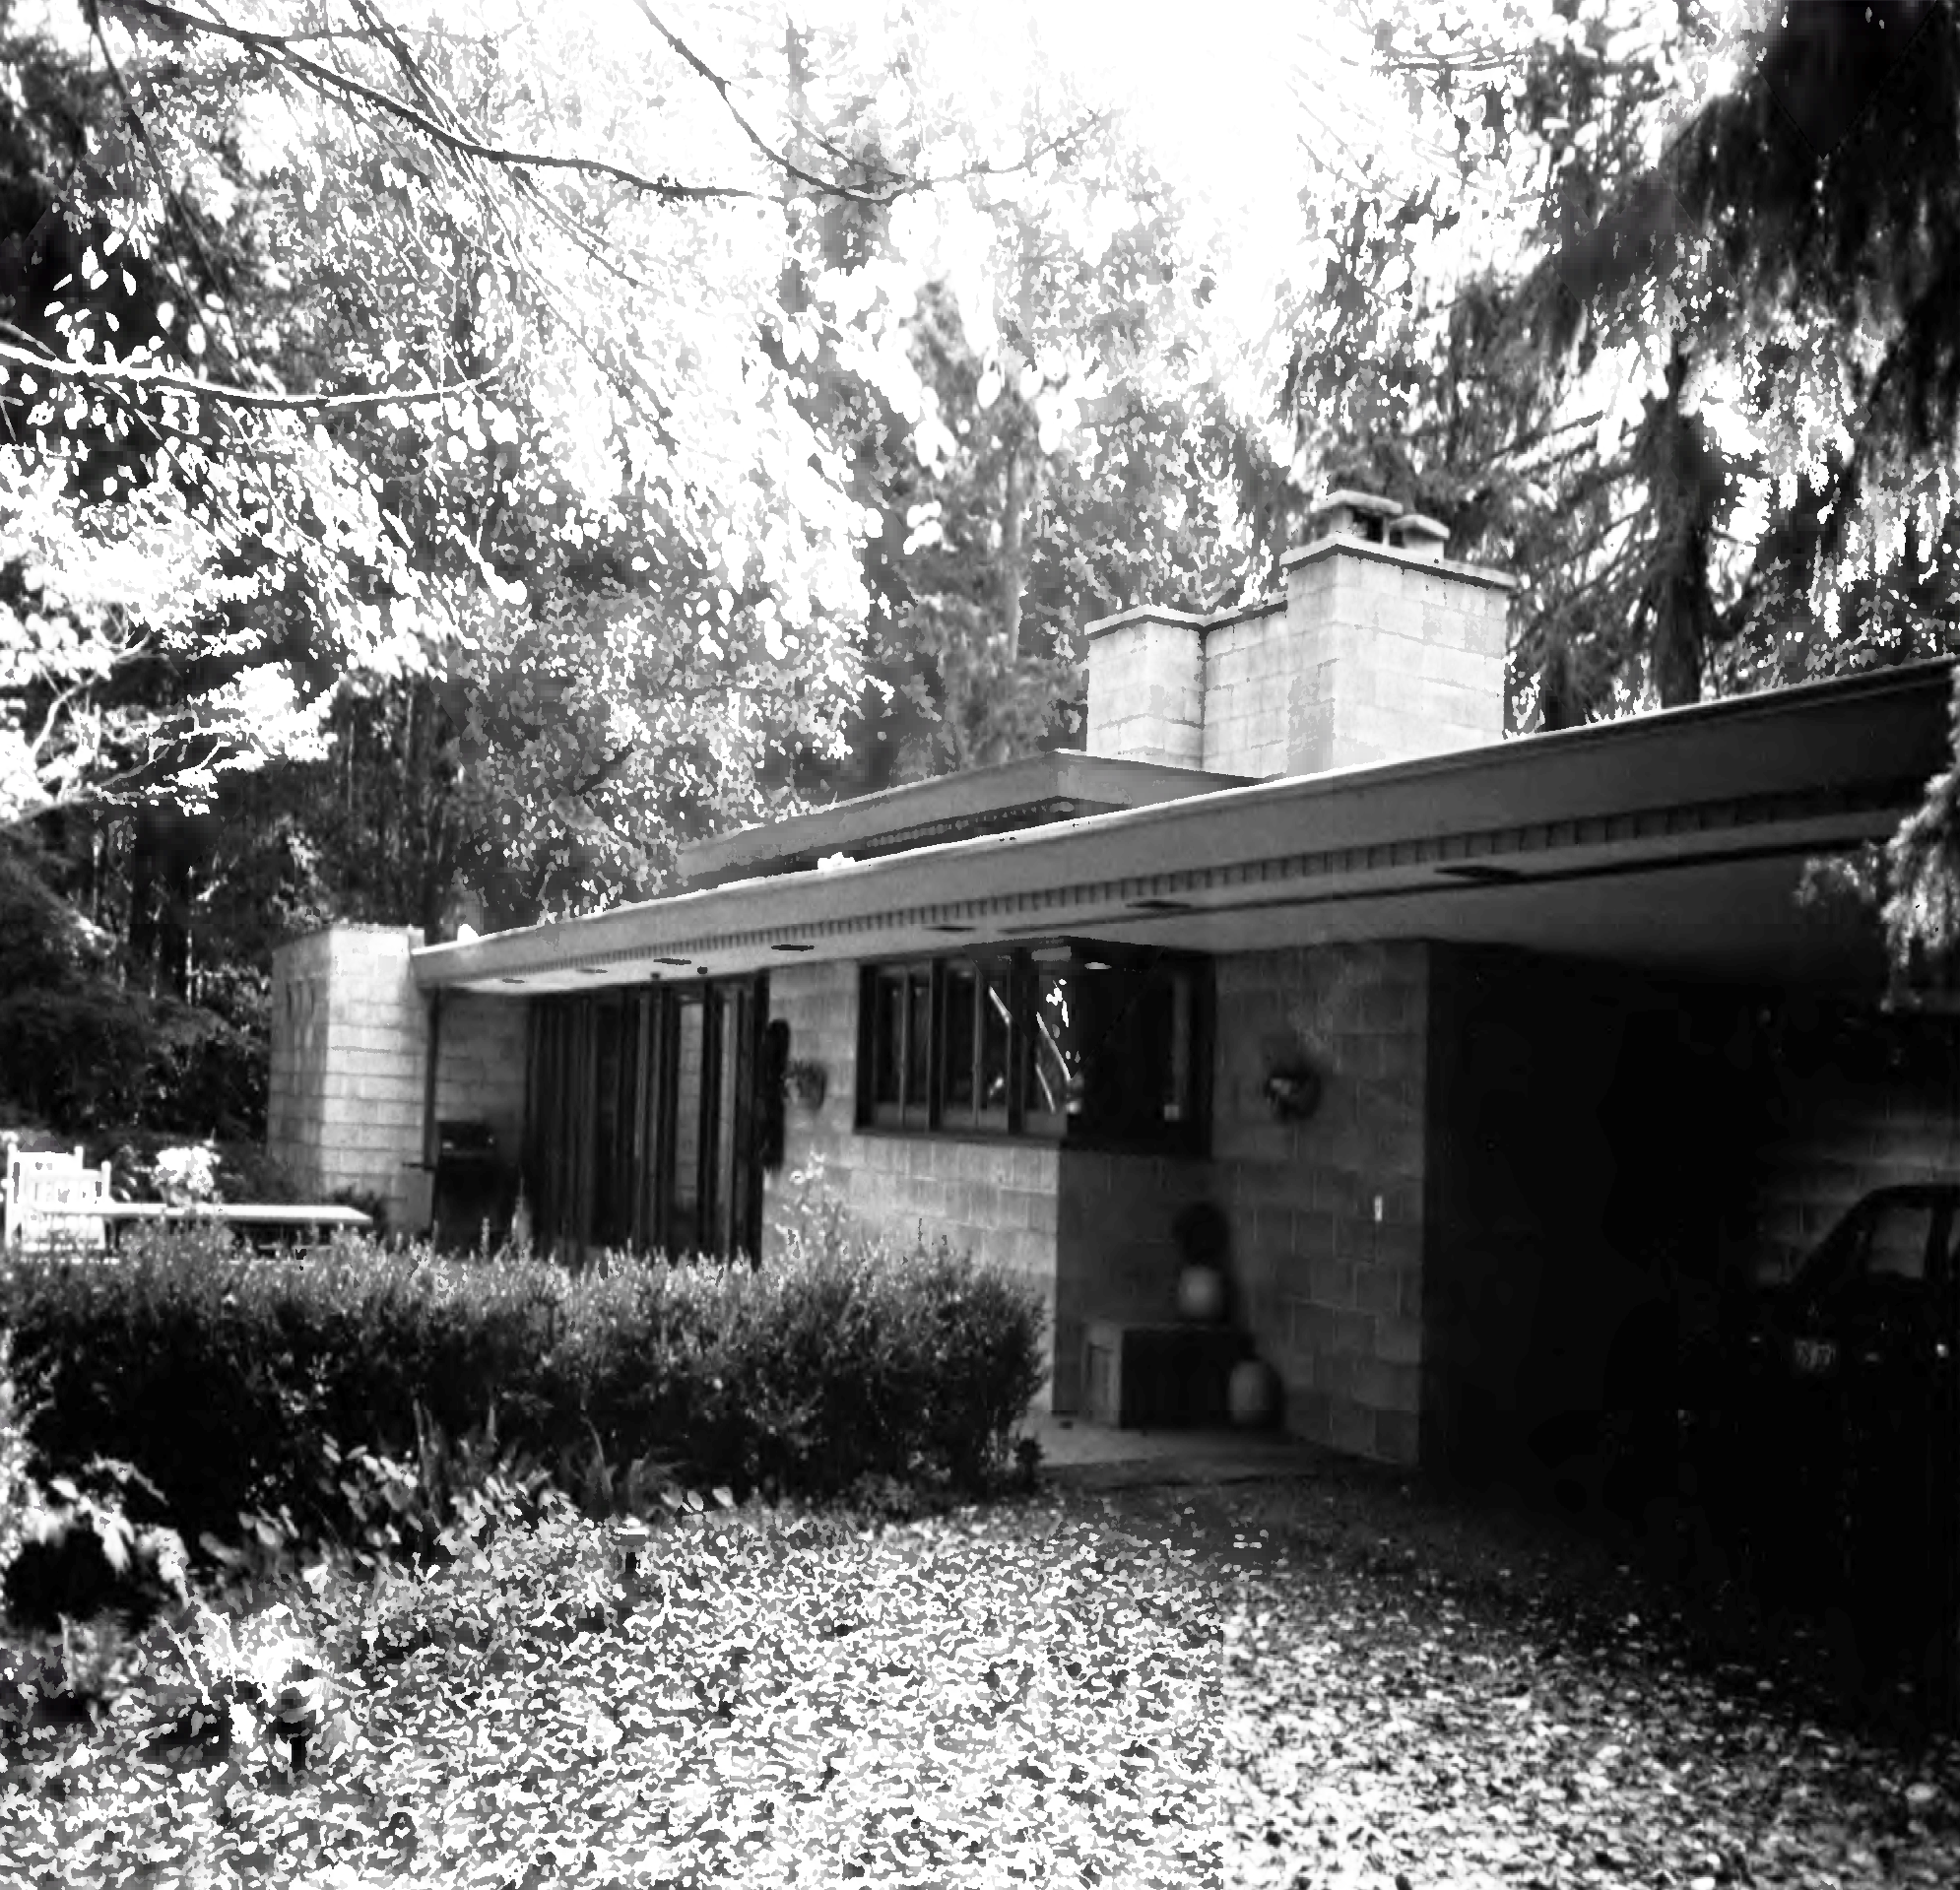 The Ray Z. Brandes house by Frank Lloyd Wright in Seattle. The house has a flat roof, brick facade, and a yard in front.